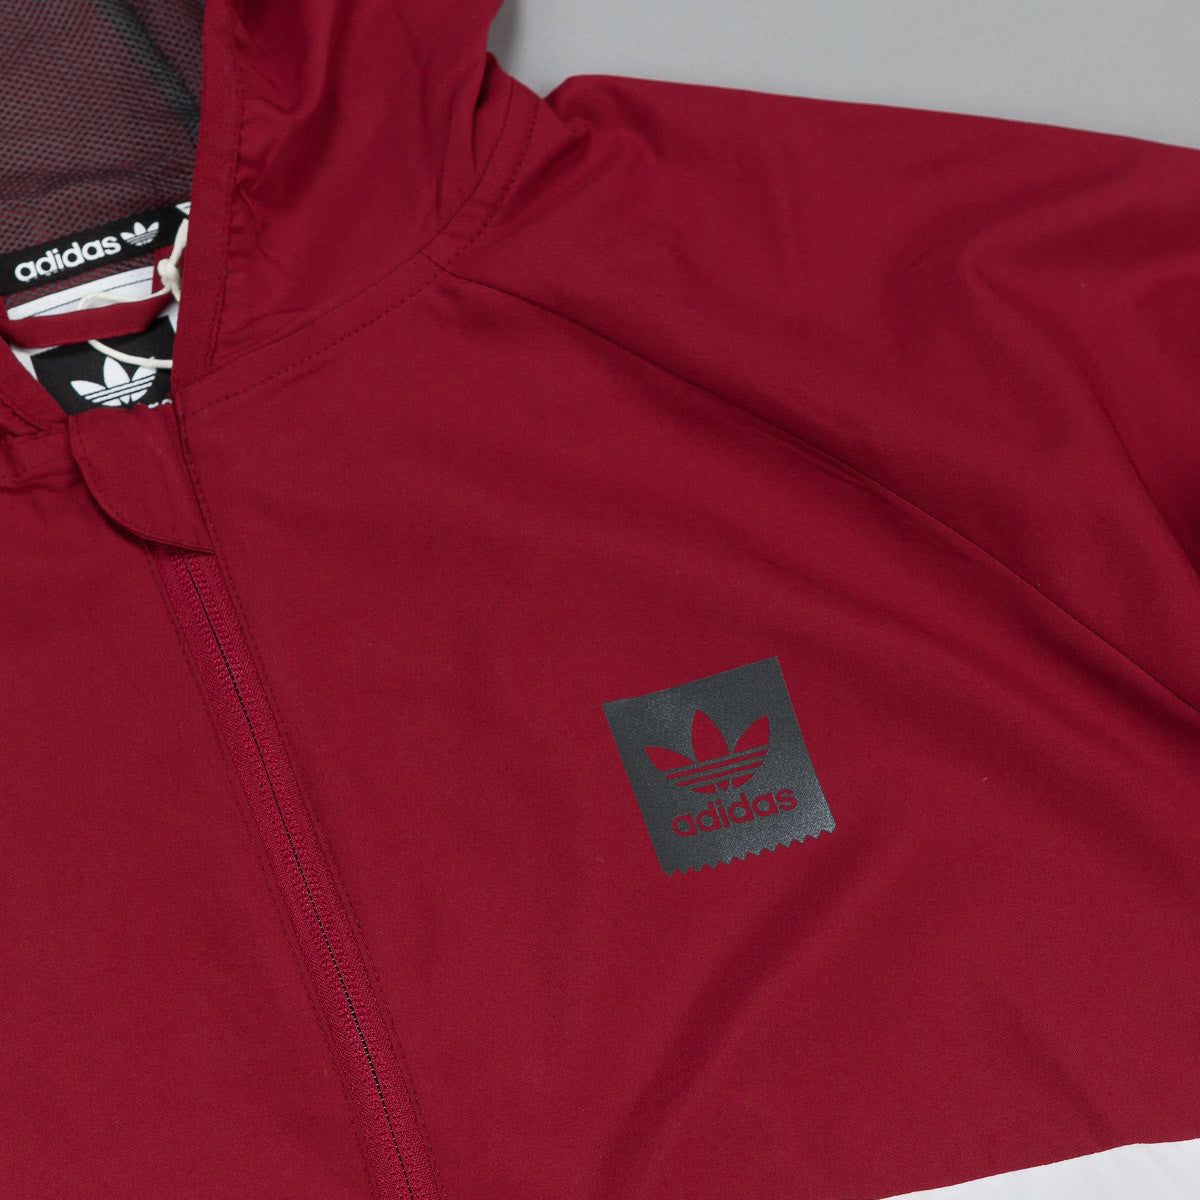 Adidas Blackbird Windbreaker Jacket - Collegiate Burgundy